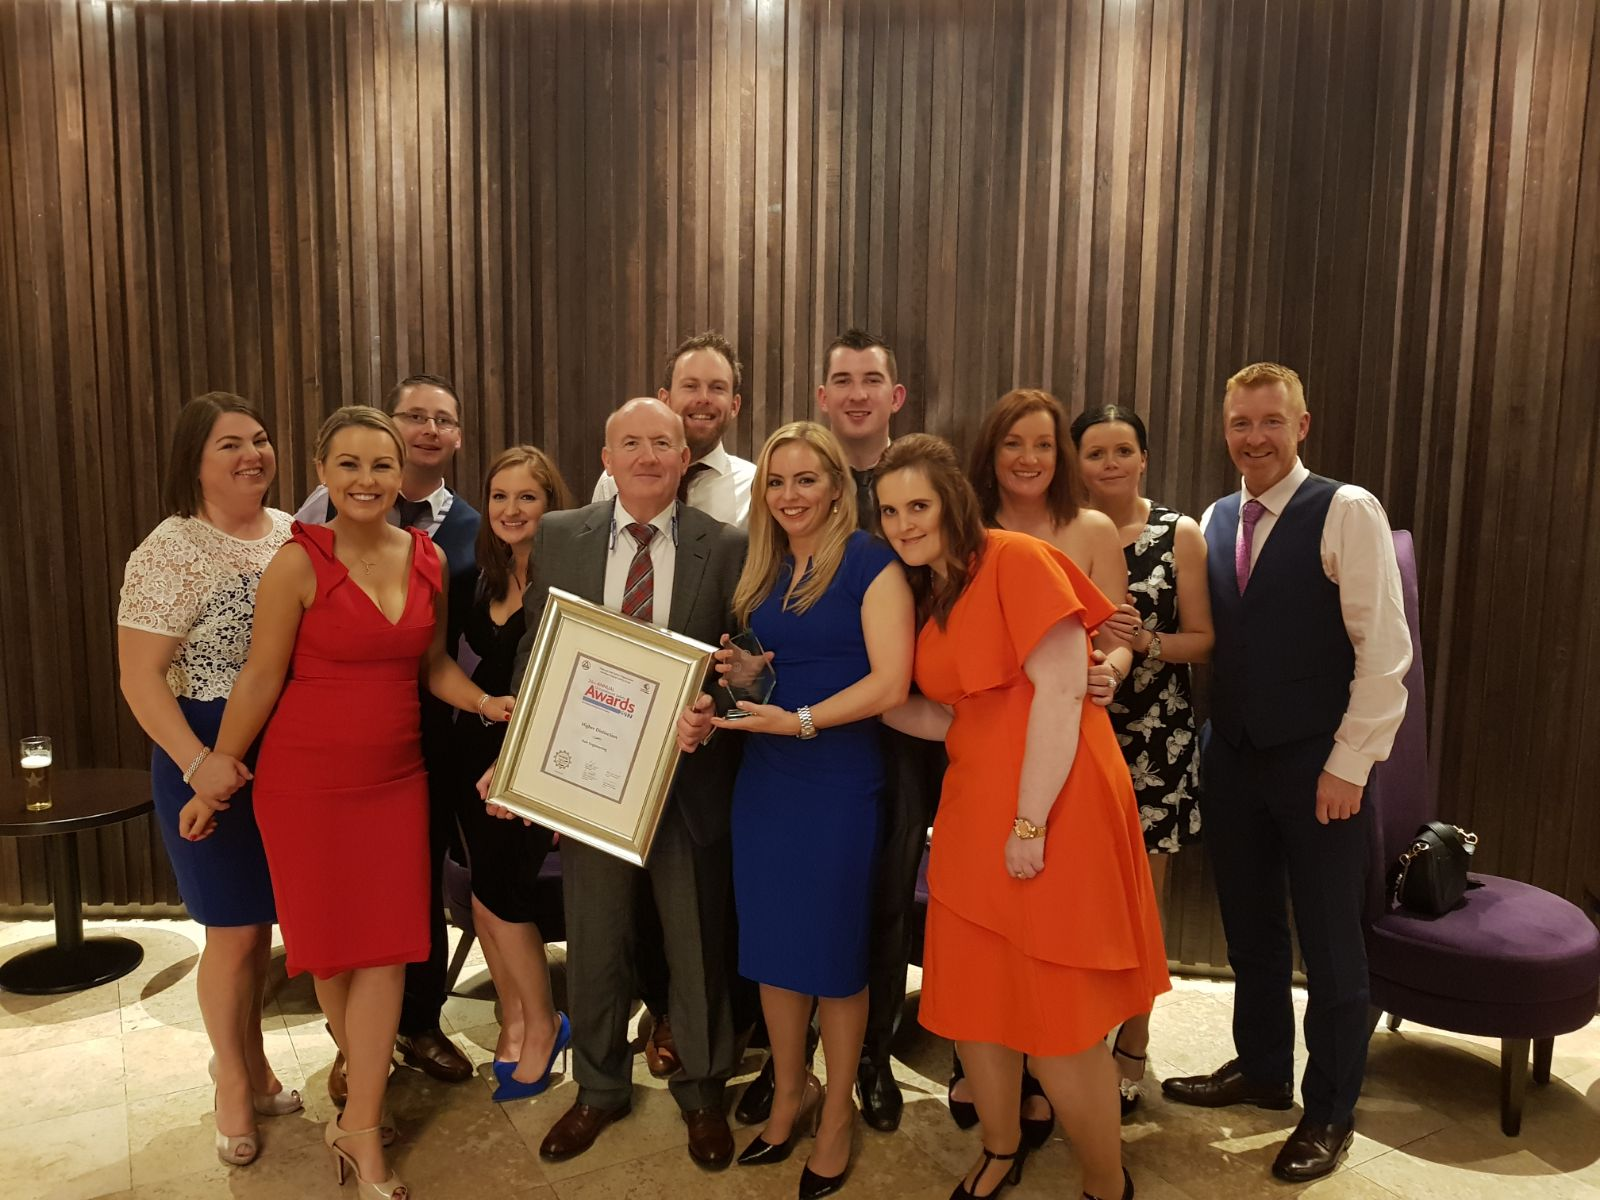 Some of the suir engineering team receiving the Higher Distinction NISO Award 2017